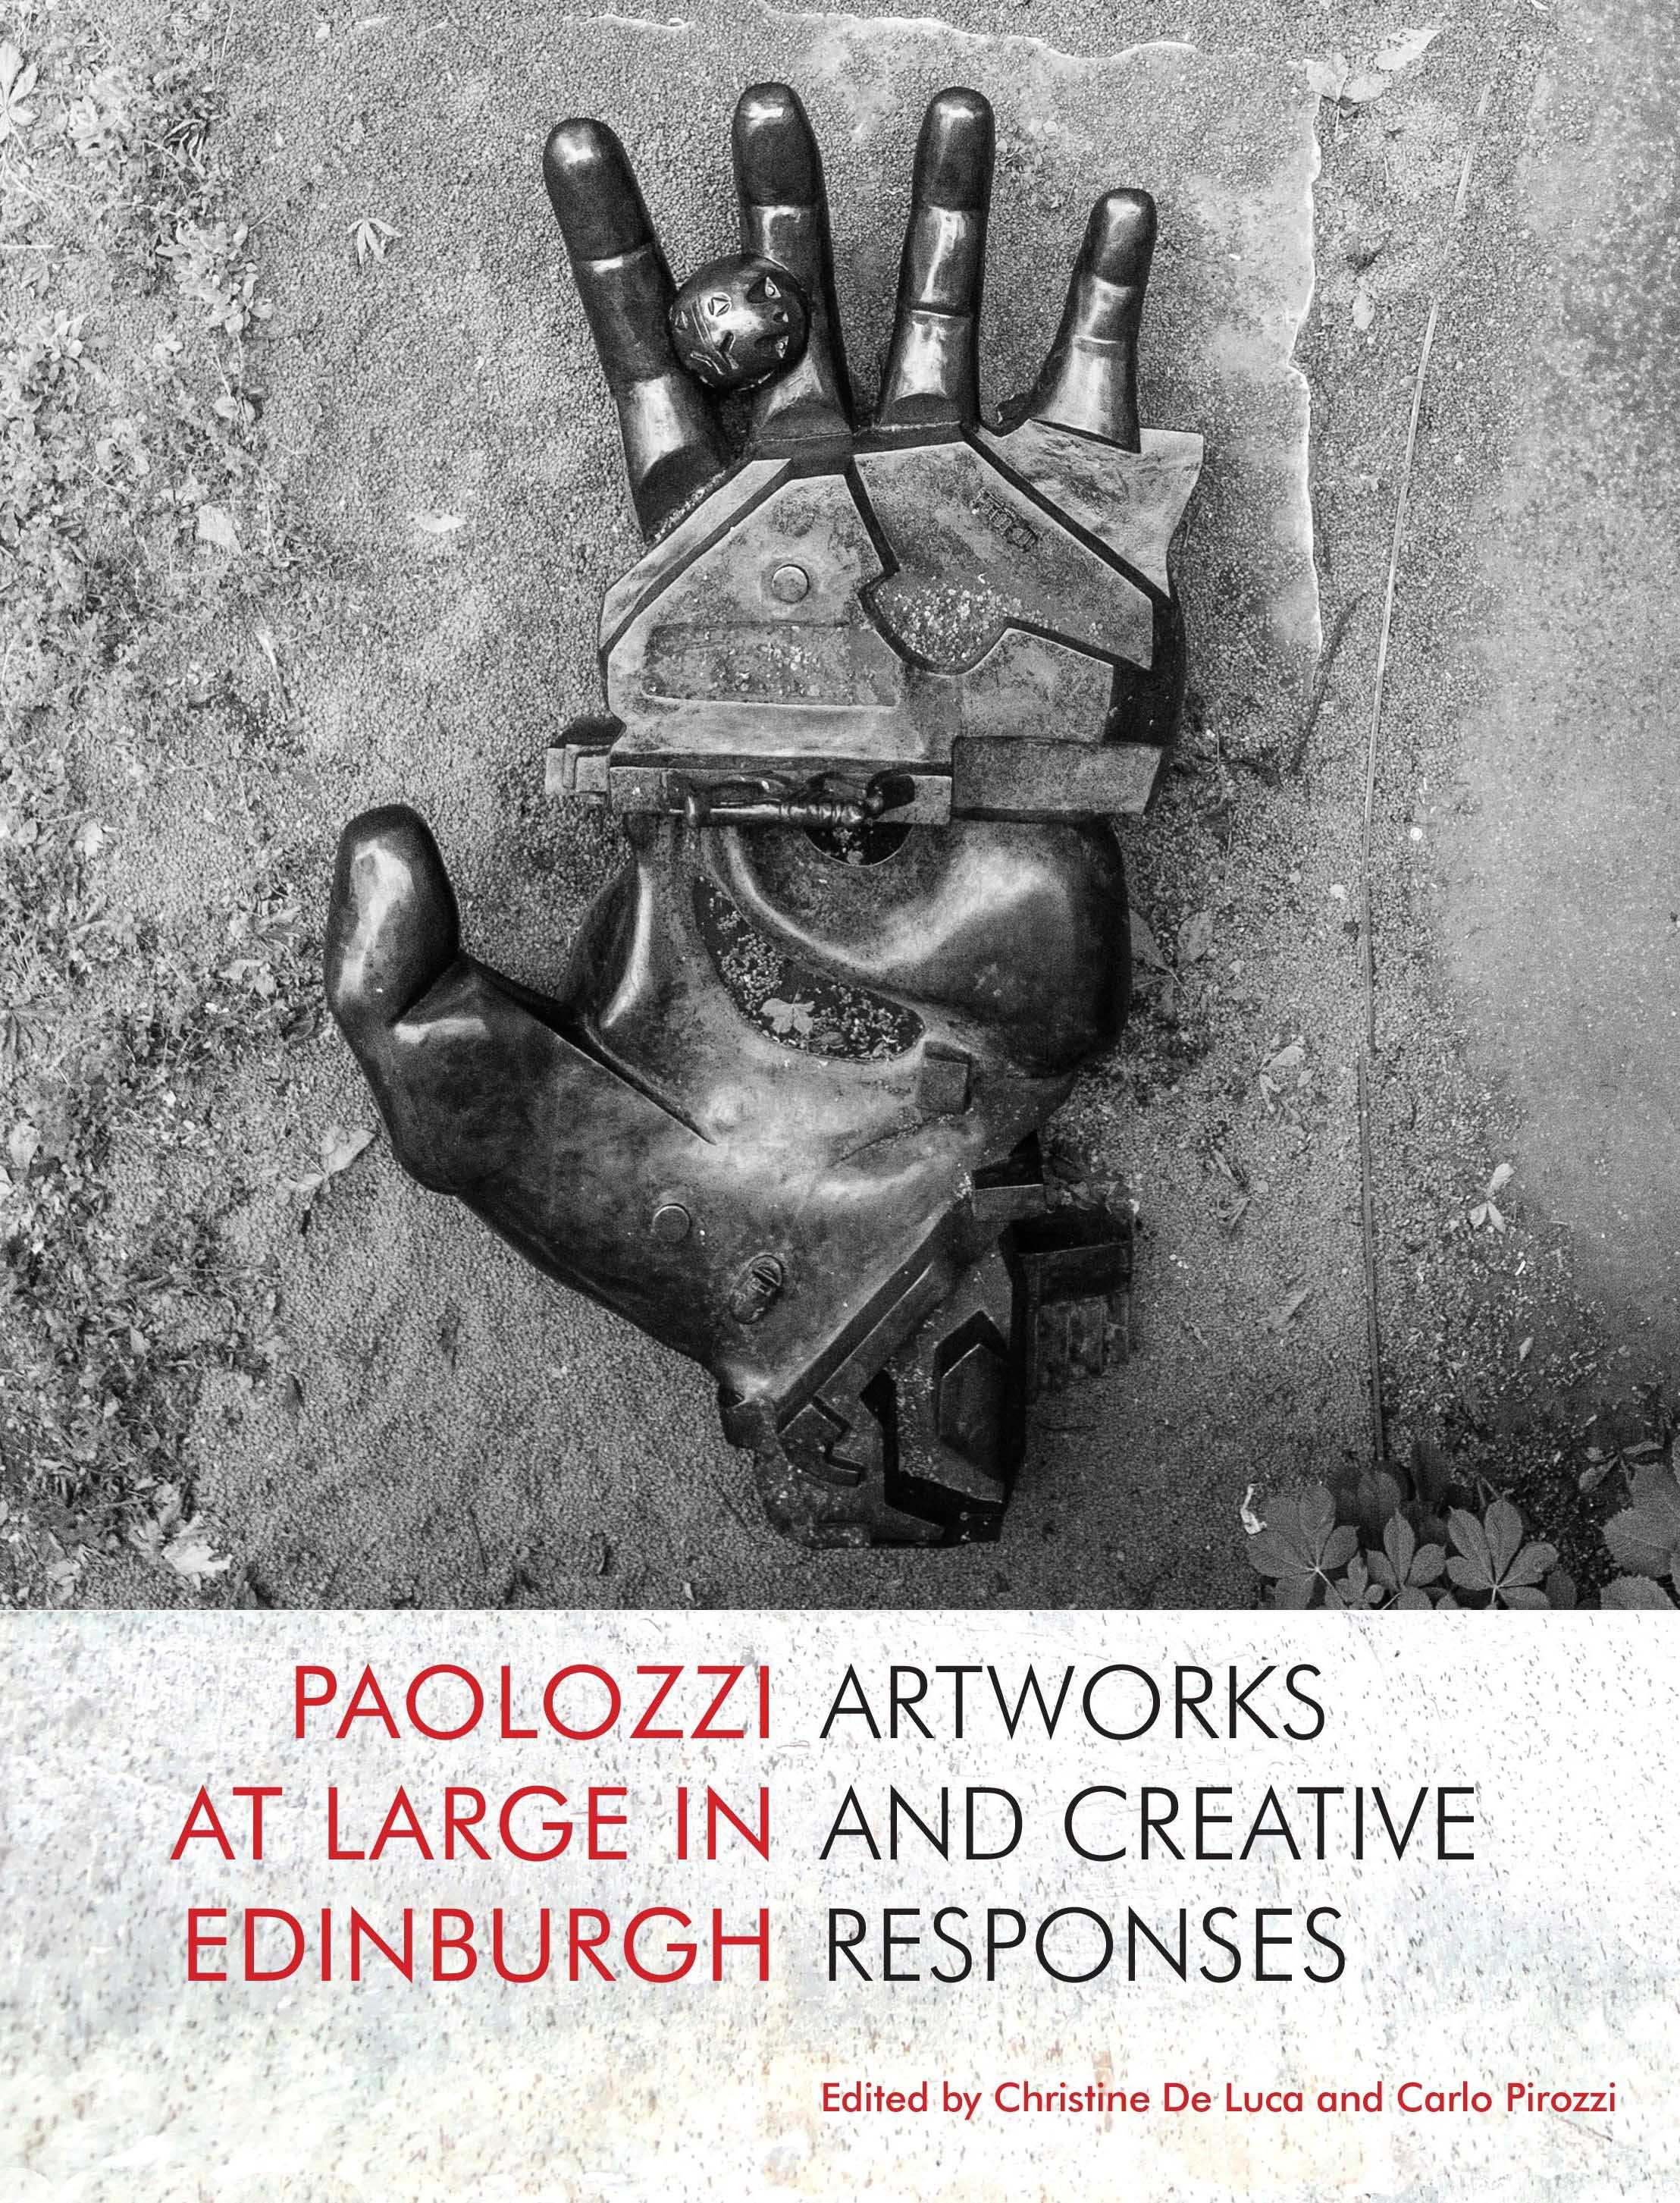 Black and white image of  Paolozzi sculpture of a hand